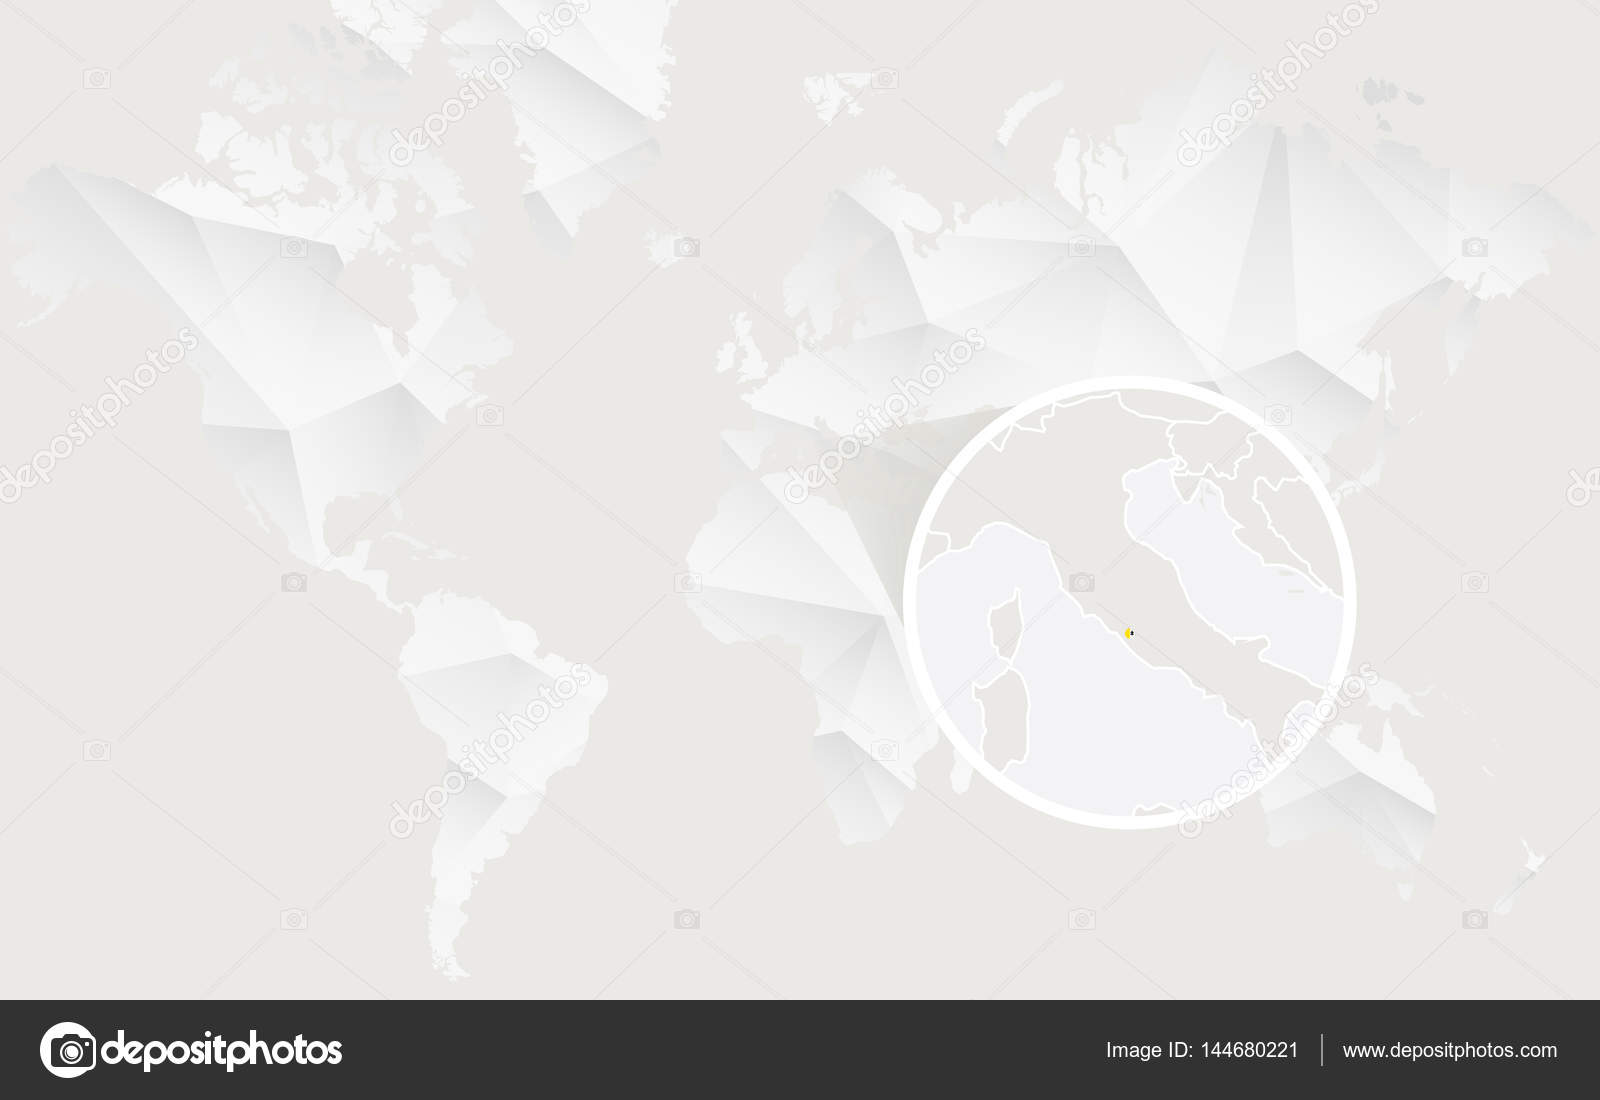 Vatican City On World Map.Vatican City Map With Flag In Contour On White Polygonal World M